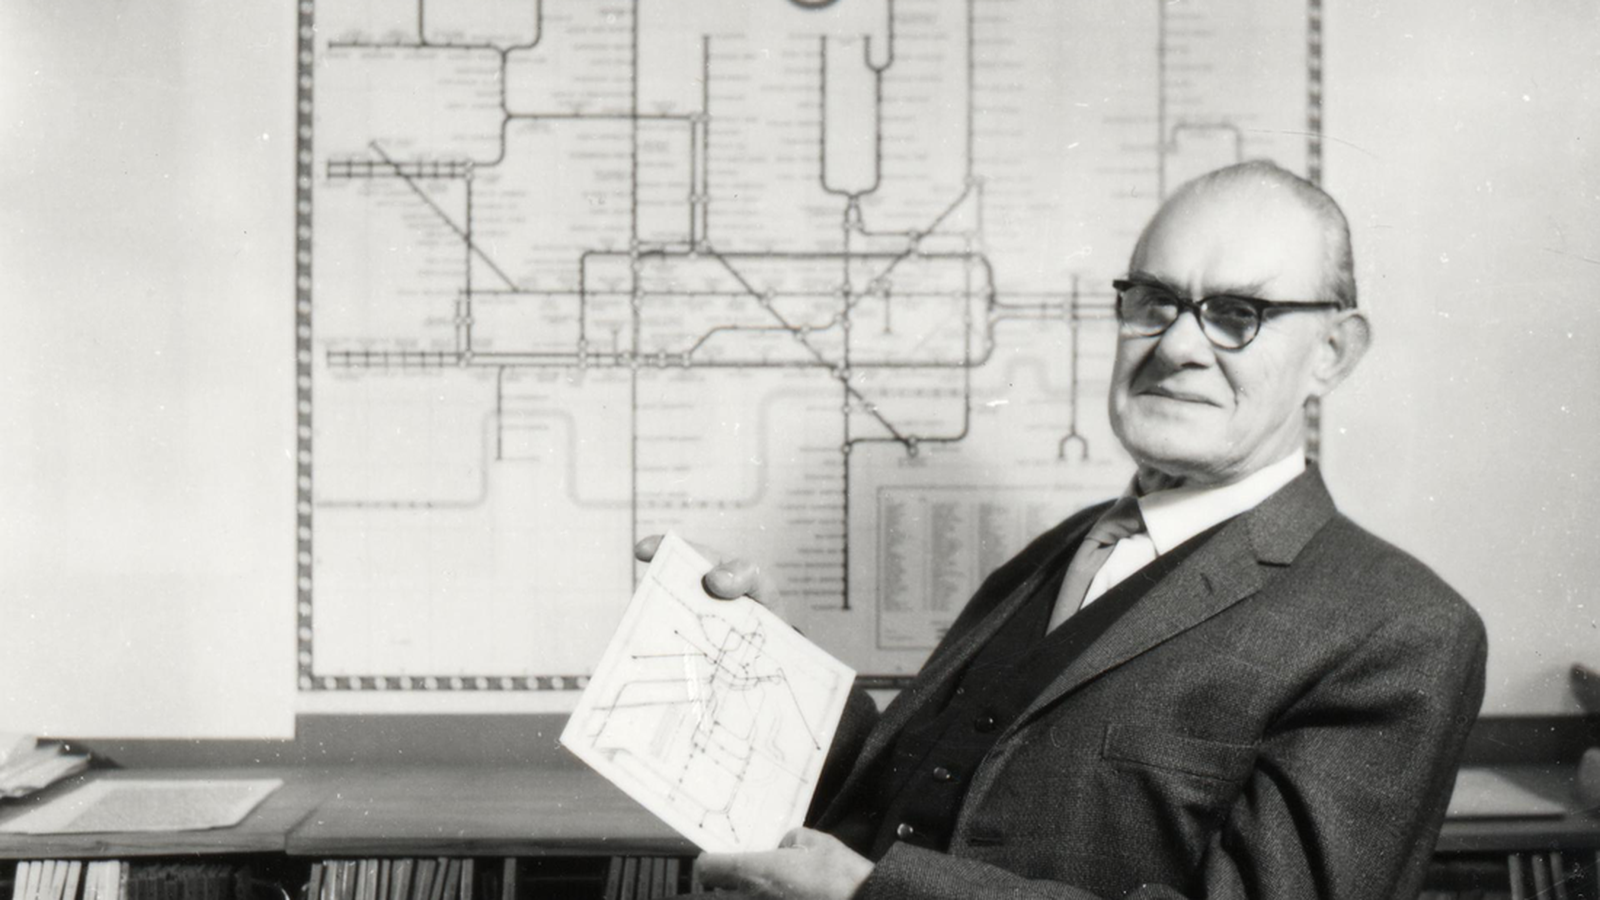 Harry Beck,圖片出處:http://www.theverge.com/2013/3/29/4160028/harry-beck-designer-of-iconic-london-underground-map